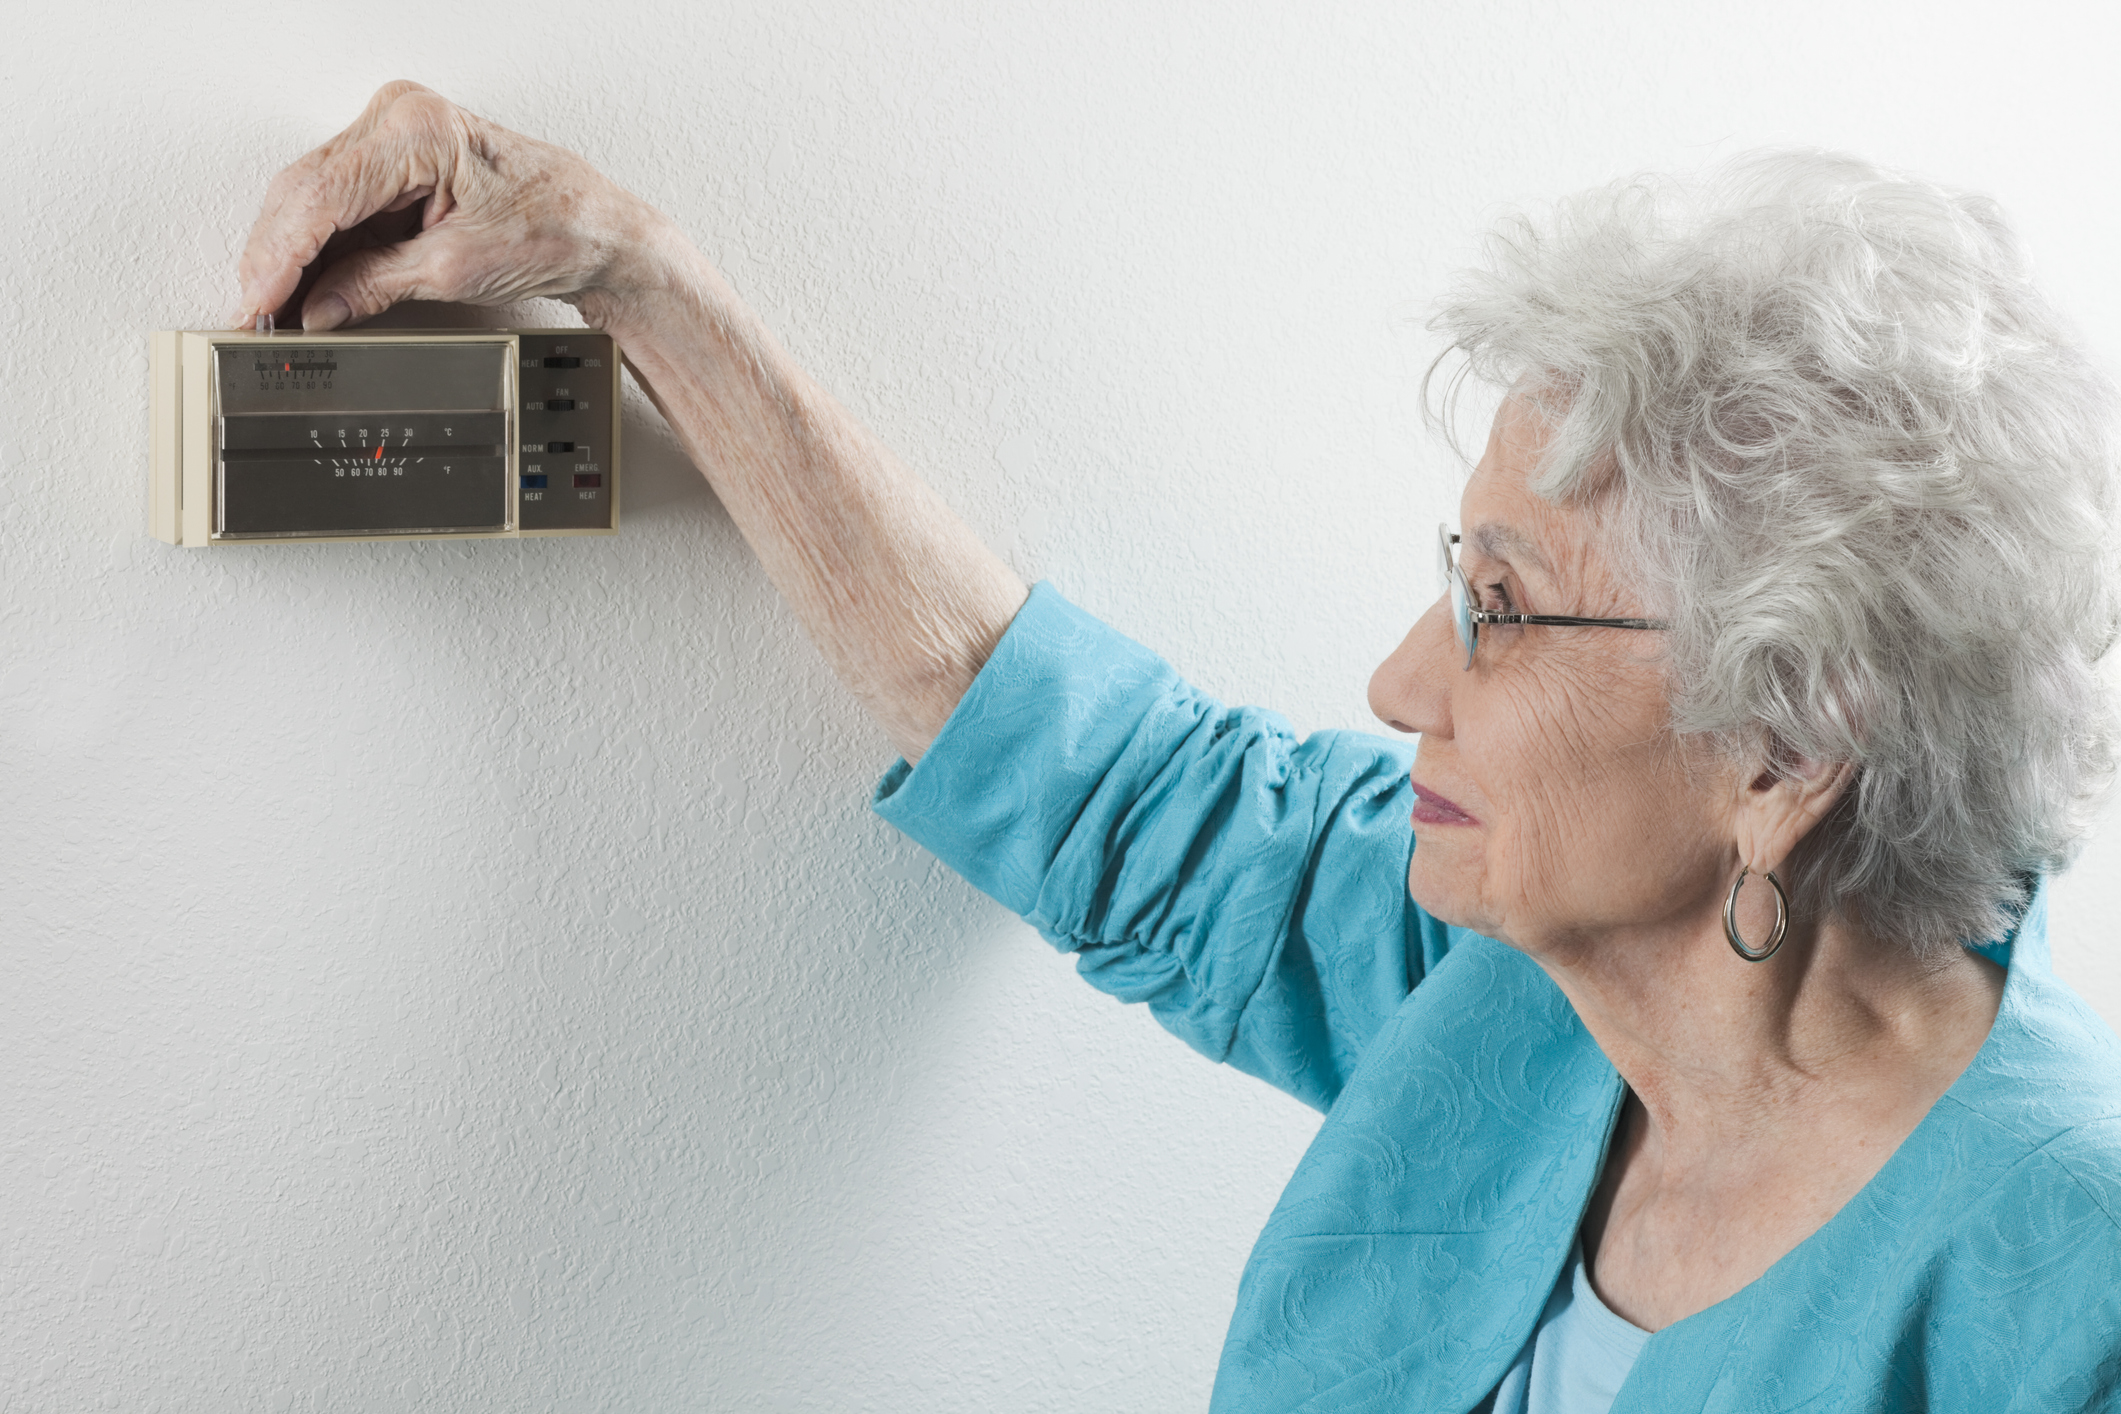 Heat illness can take a dangerous toll on seniors during the summer months.